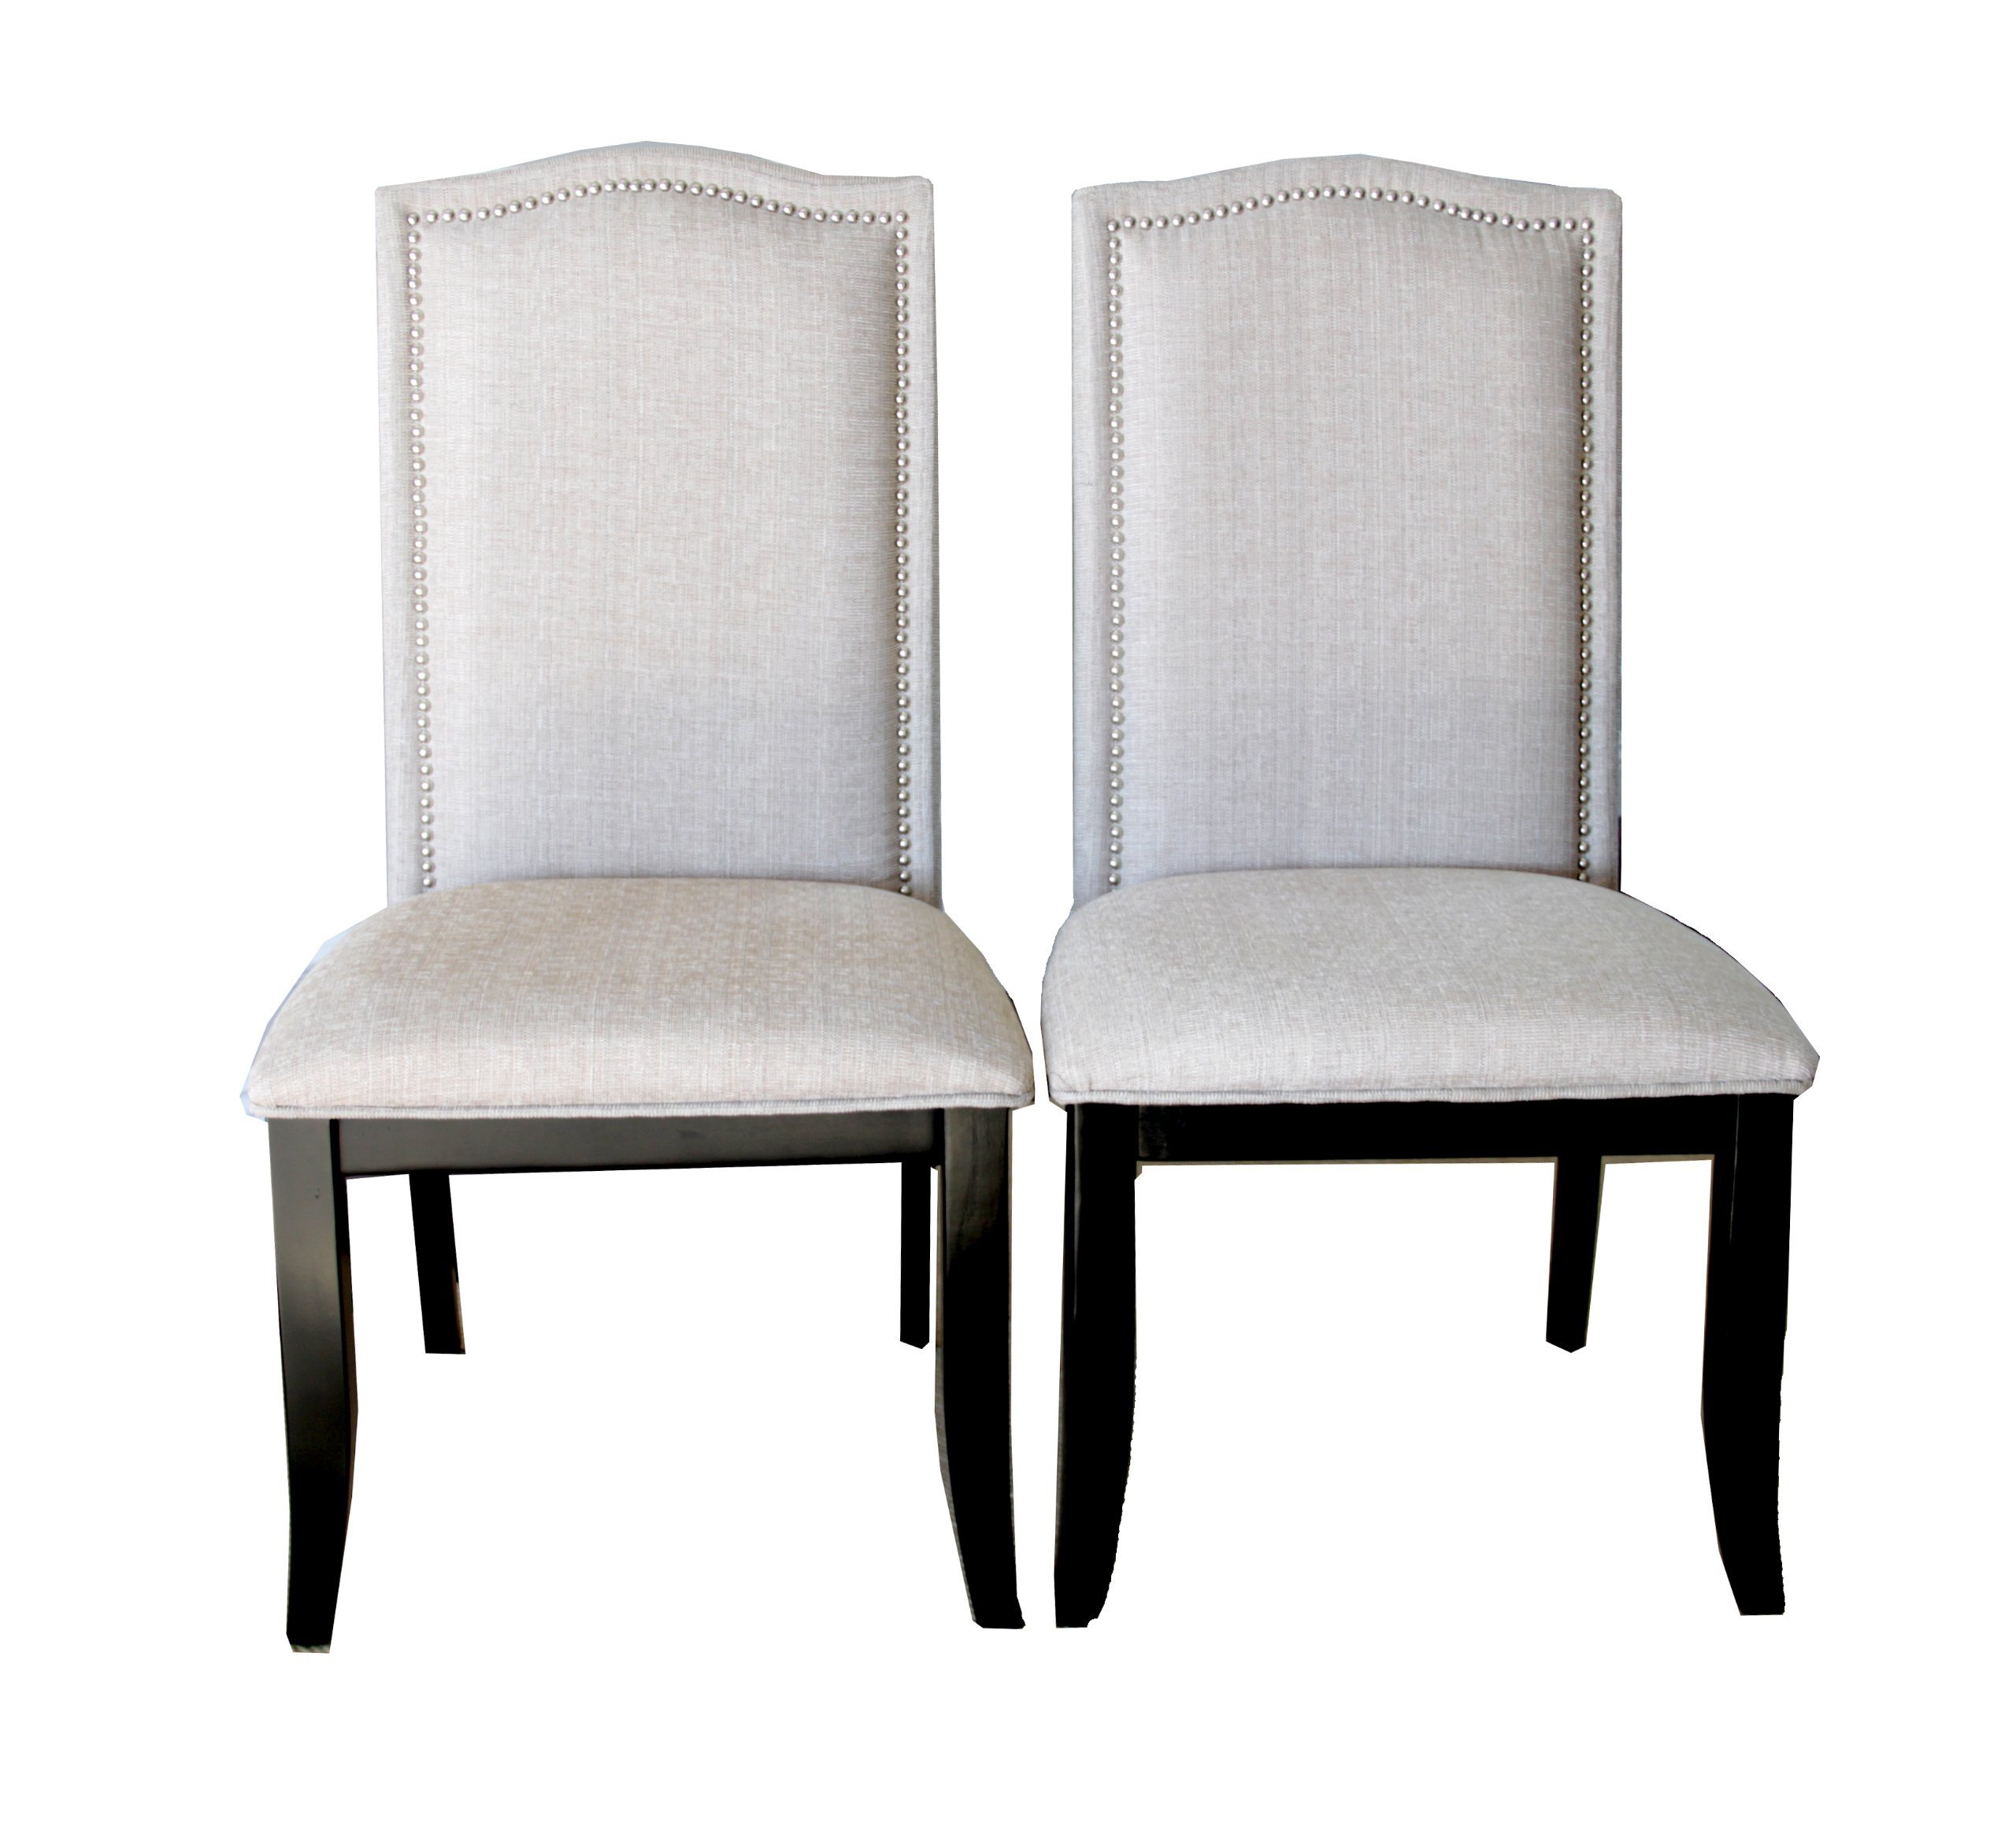 nailhead upholstered dining chair bean bag adult set of 2 beige fabric chairs with